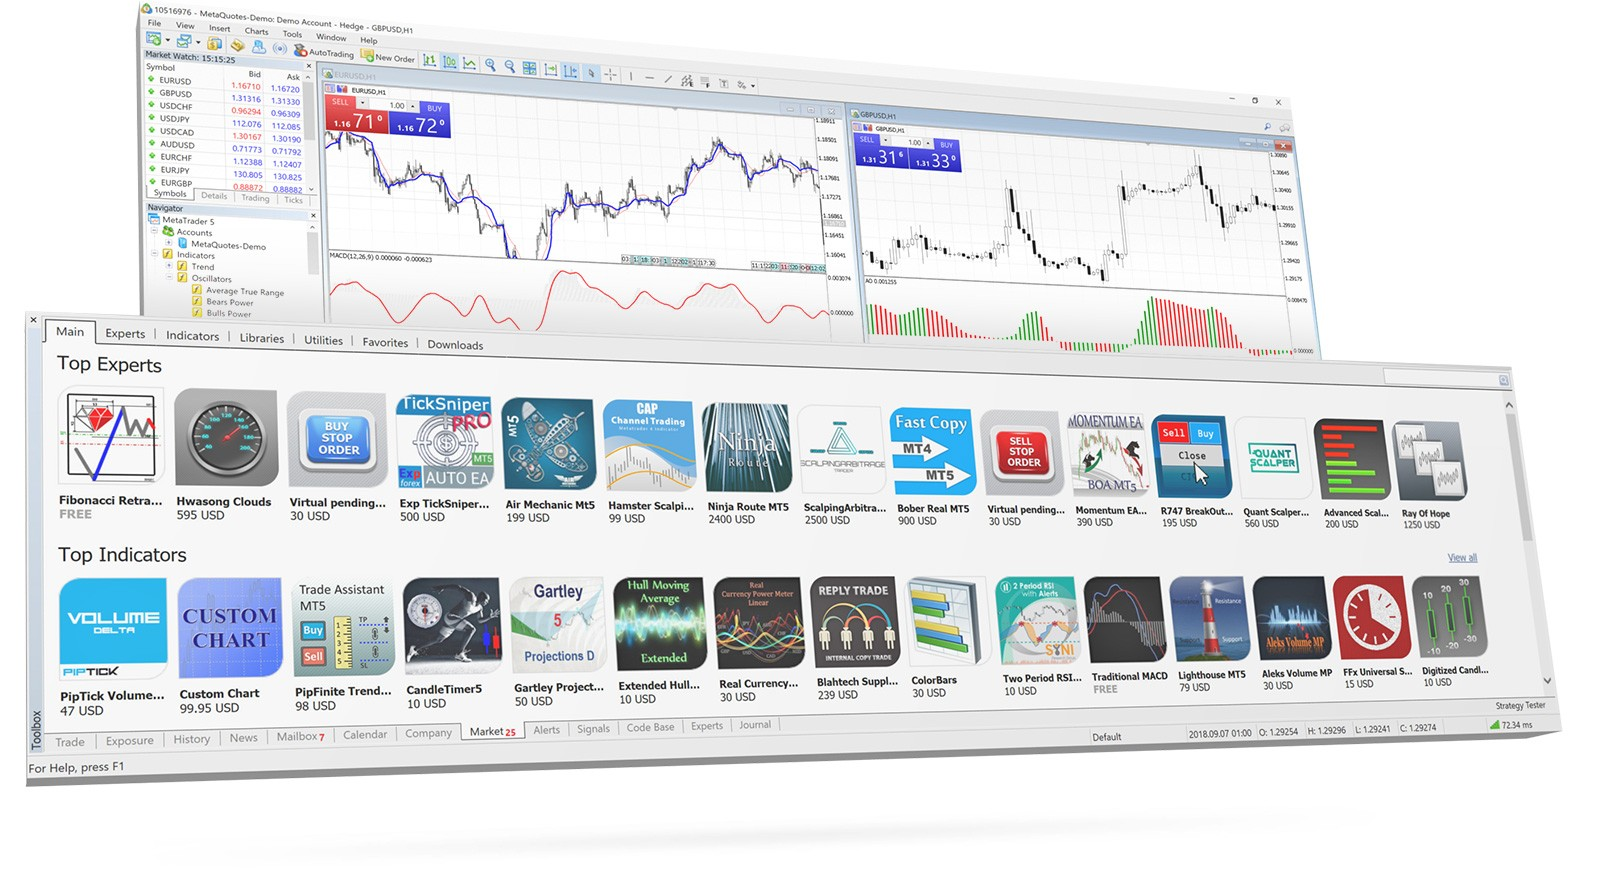 4,800 robots, 6,500 indicators, 2,400 utilities and other solutions in the MetaTrader Market